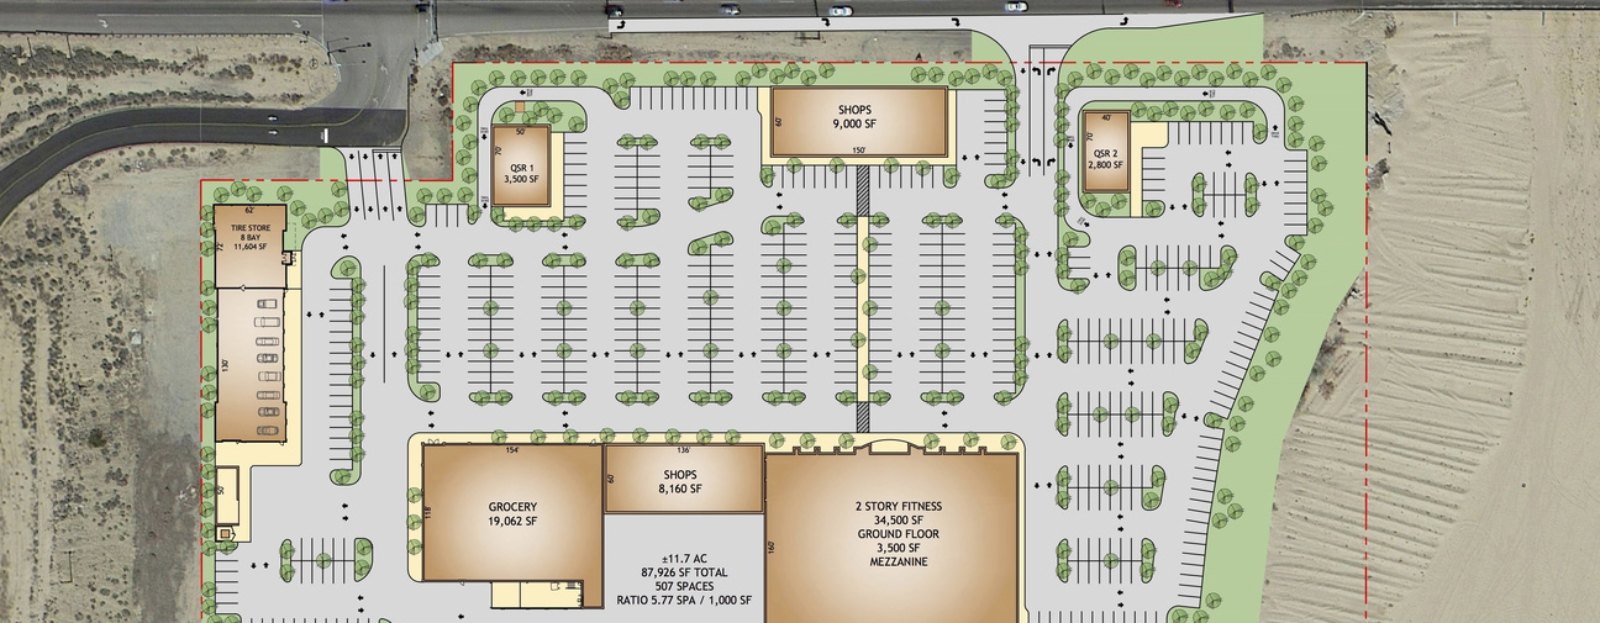 Commercial site plan commercial real estate site for Planner site